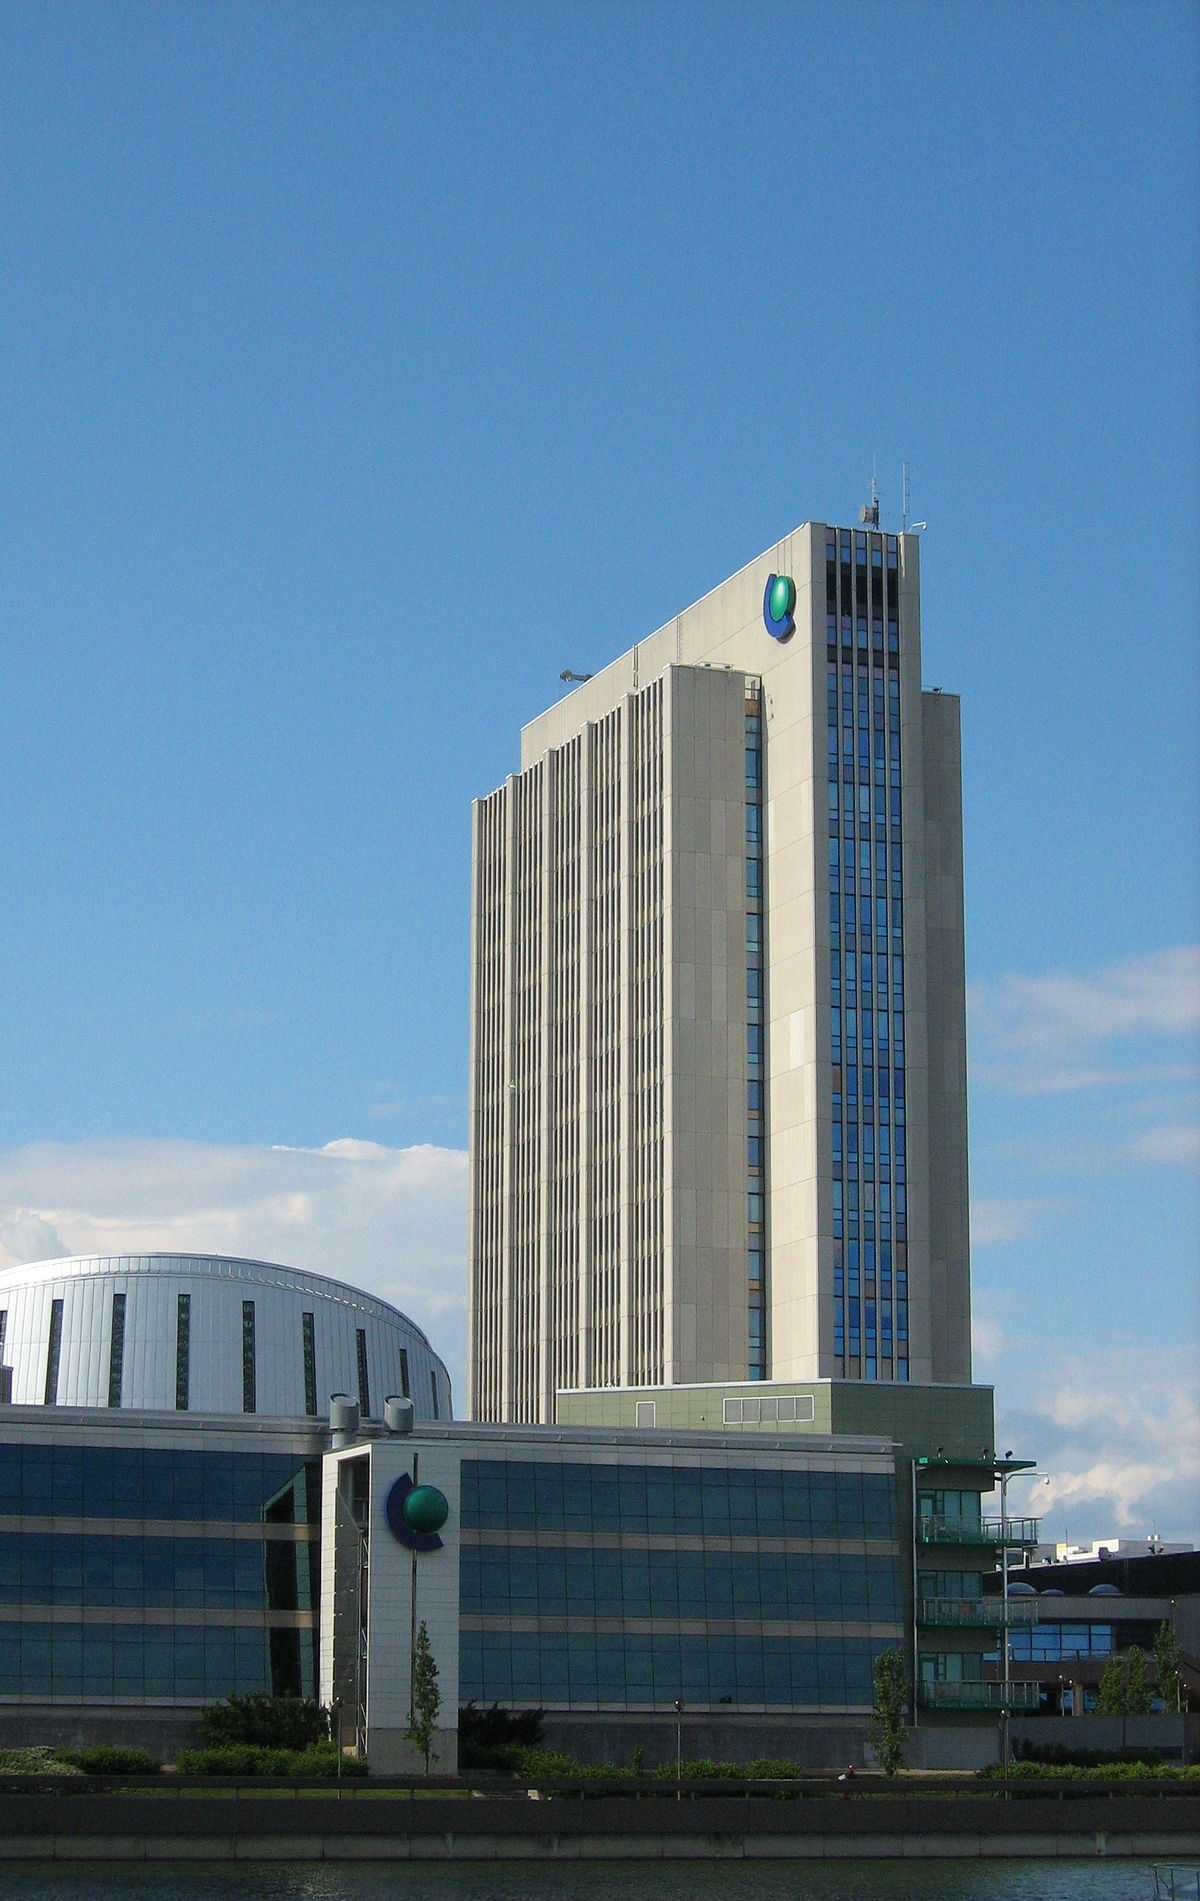 Fortum head office - Wikipedia